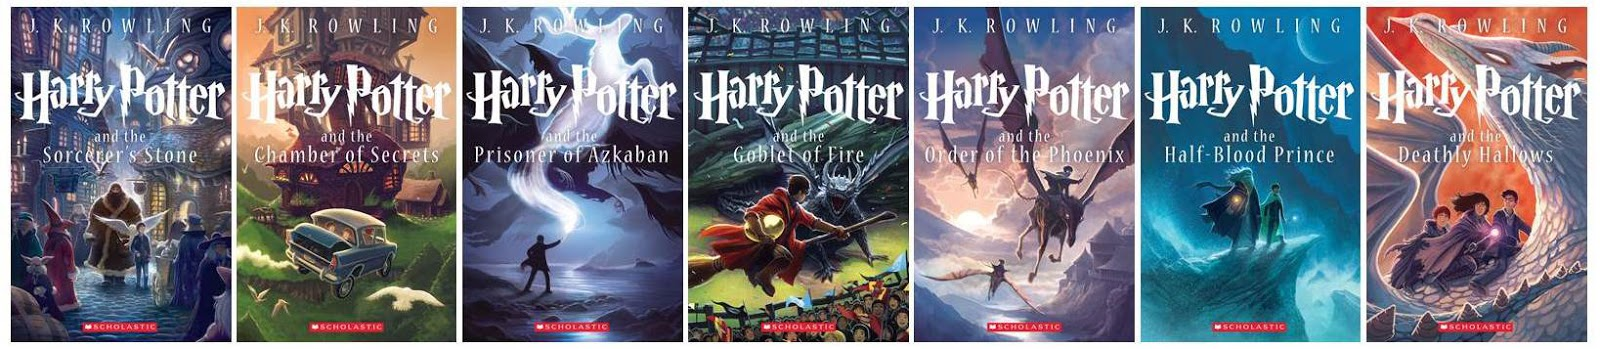 Harry Potter Book Quizzes Scholastic : Finally the new harry potter and deathly hallows th